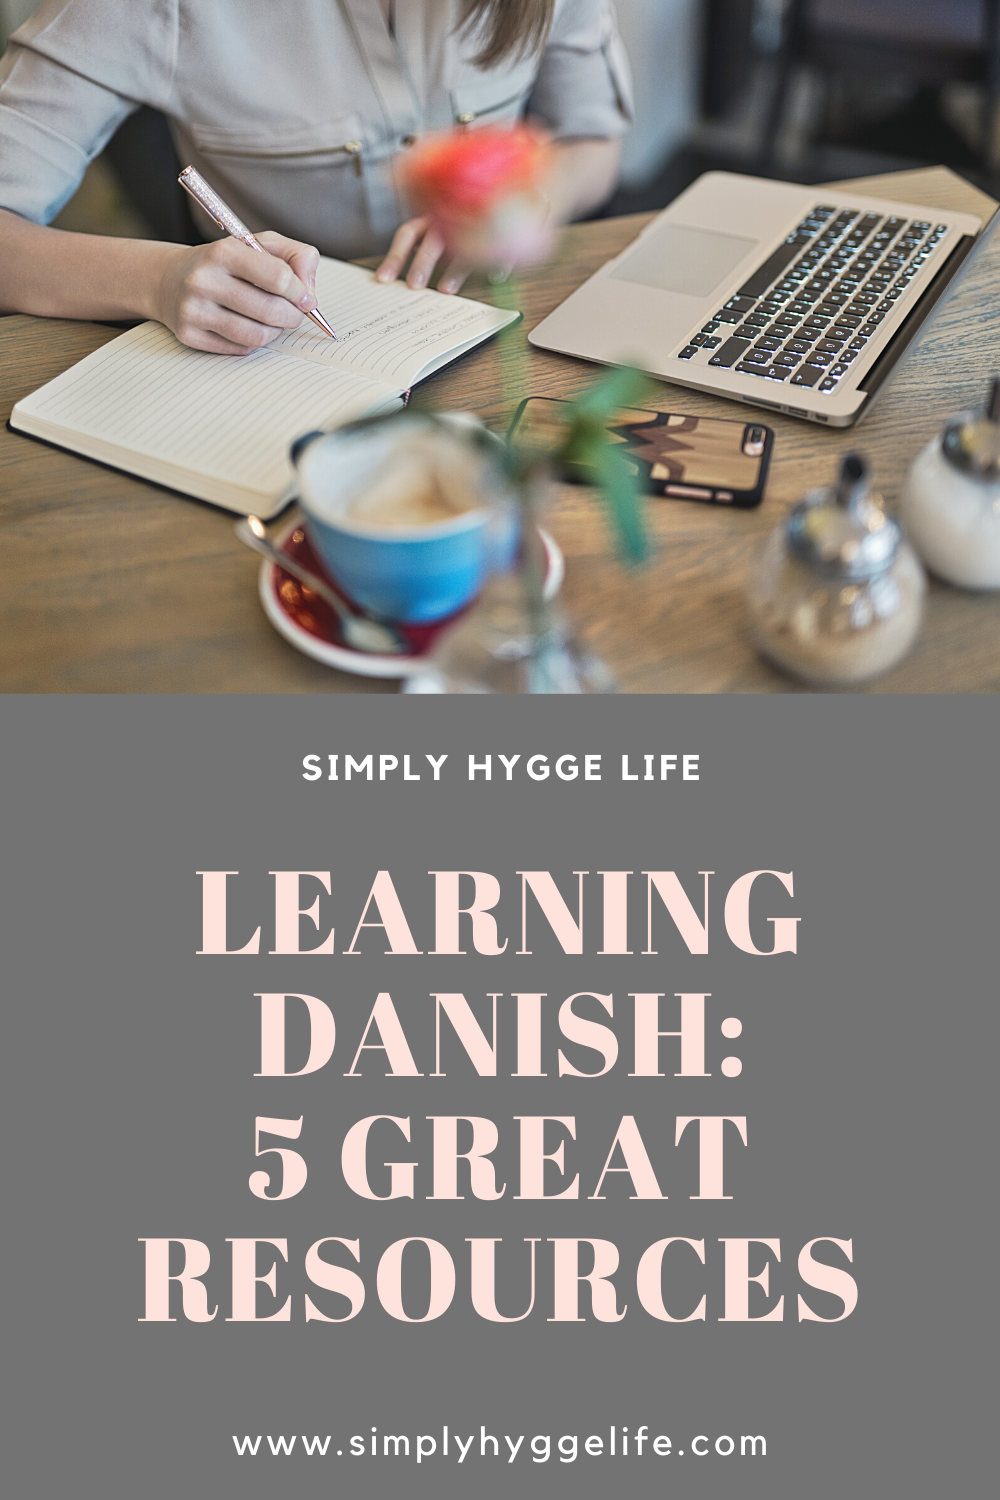 Learning Danish 5 Great Resources In 2020 Danish Language Hygge Life Life Learning